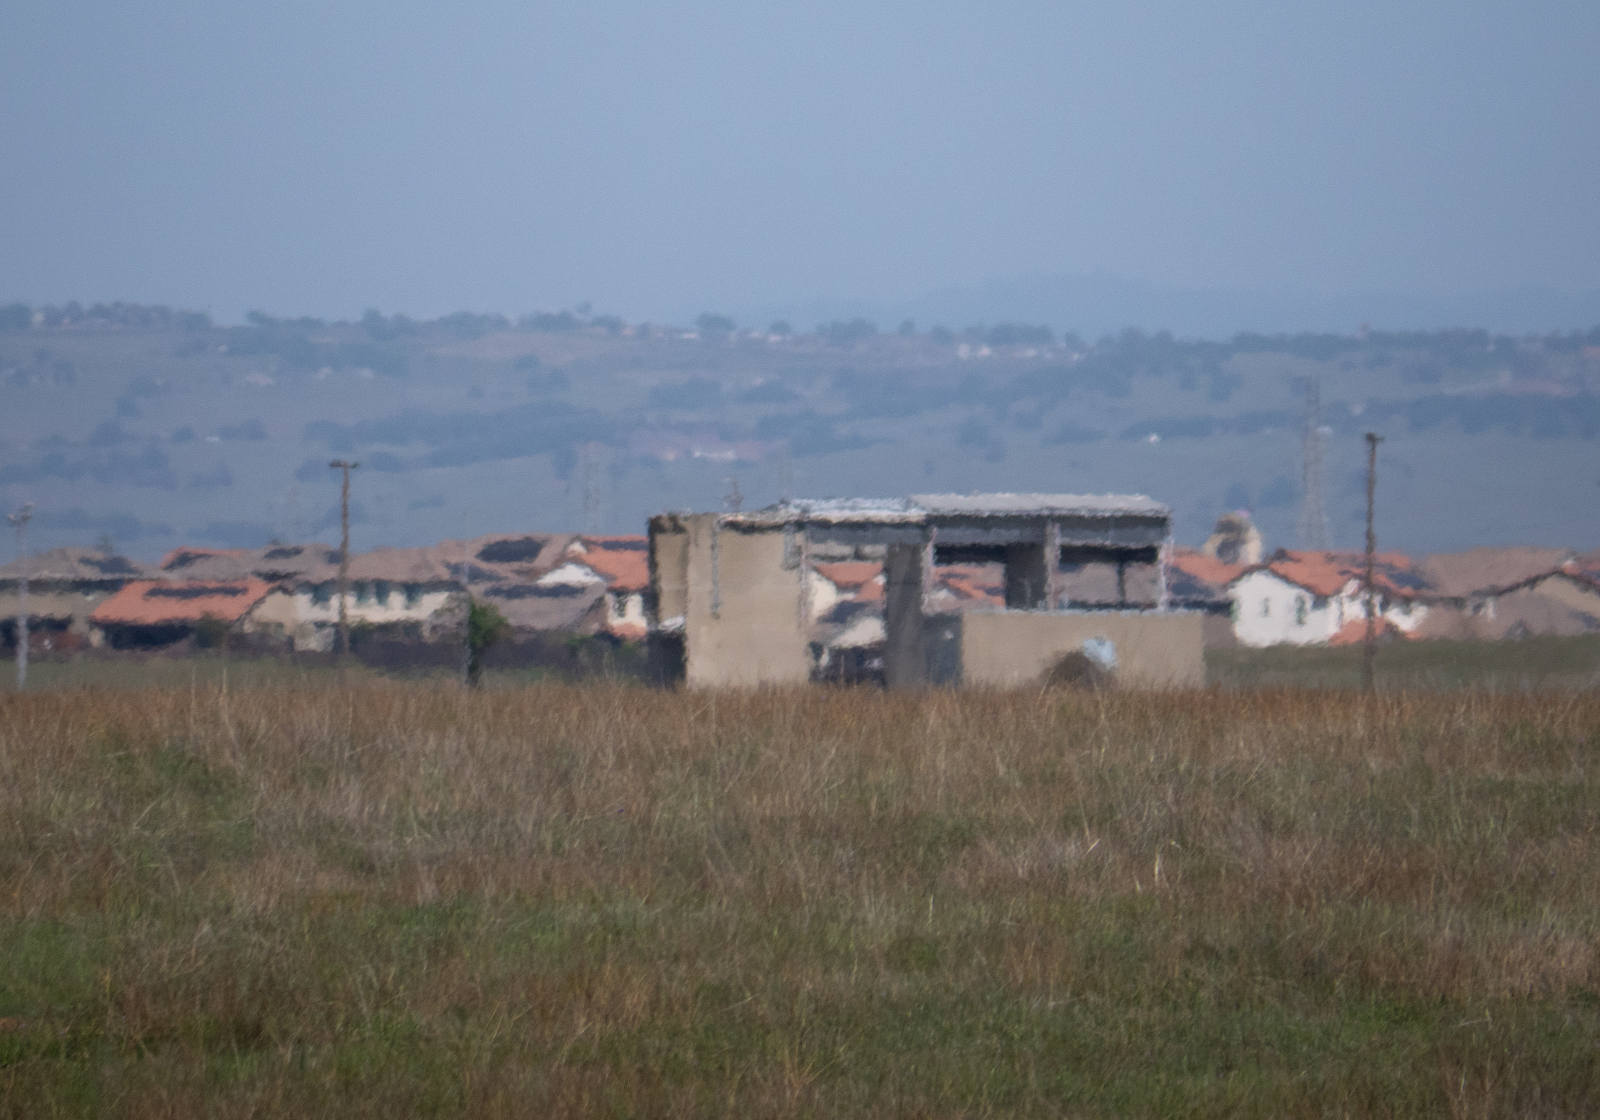 The remains of the Gamma test site, where the APS were tested. The houses in the background were not there in the 1960s when SACTO was operational.